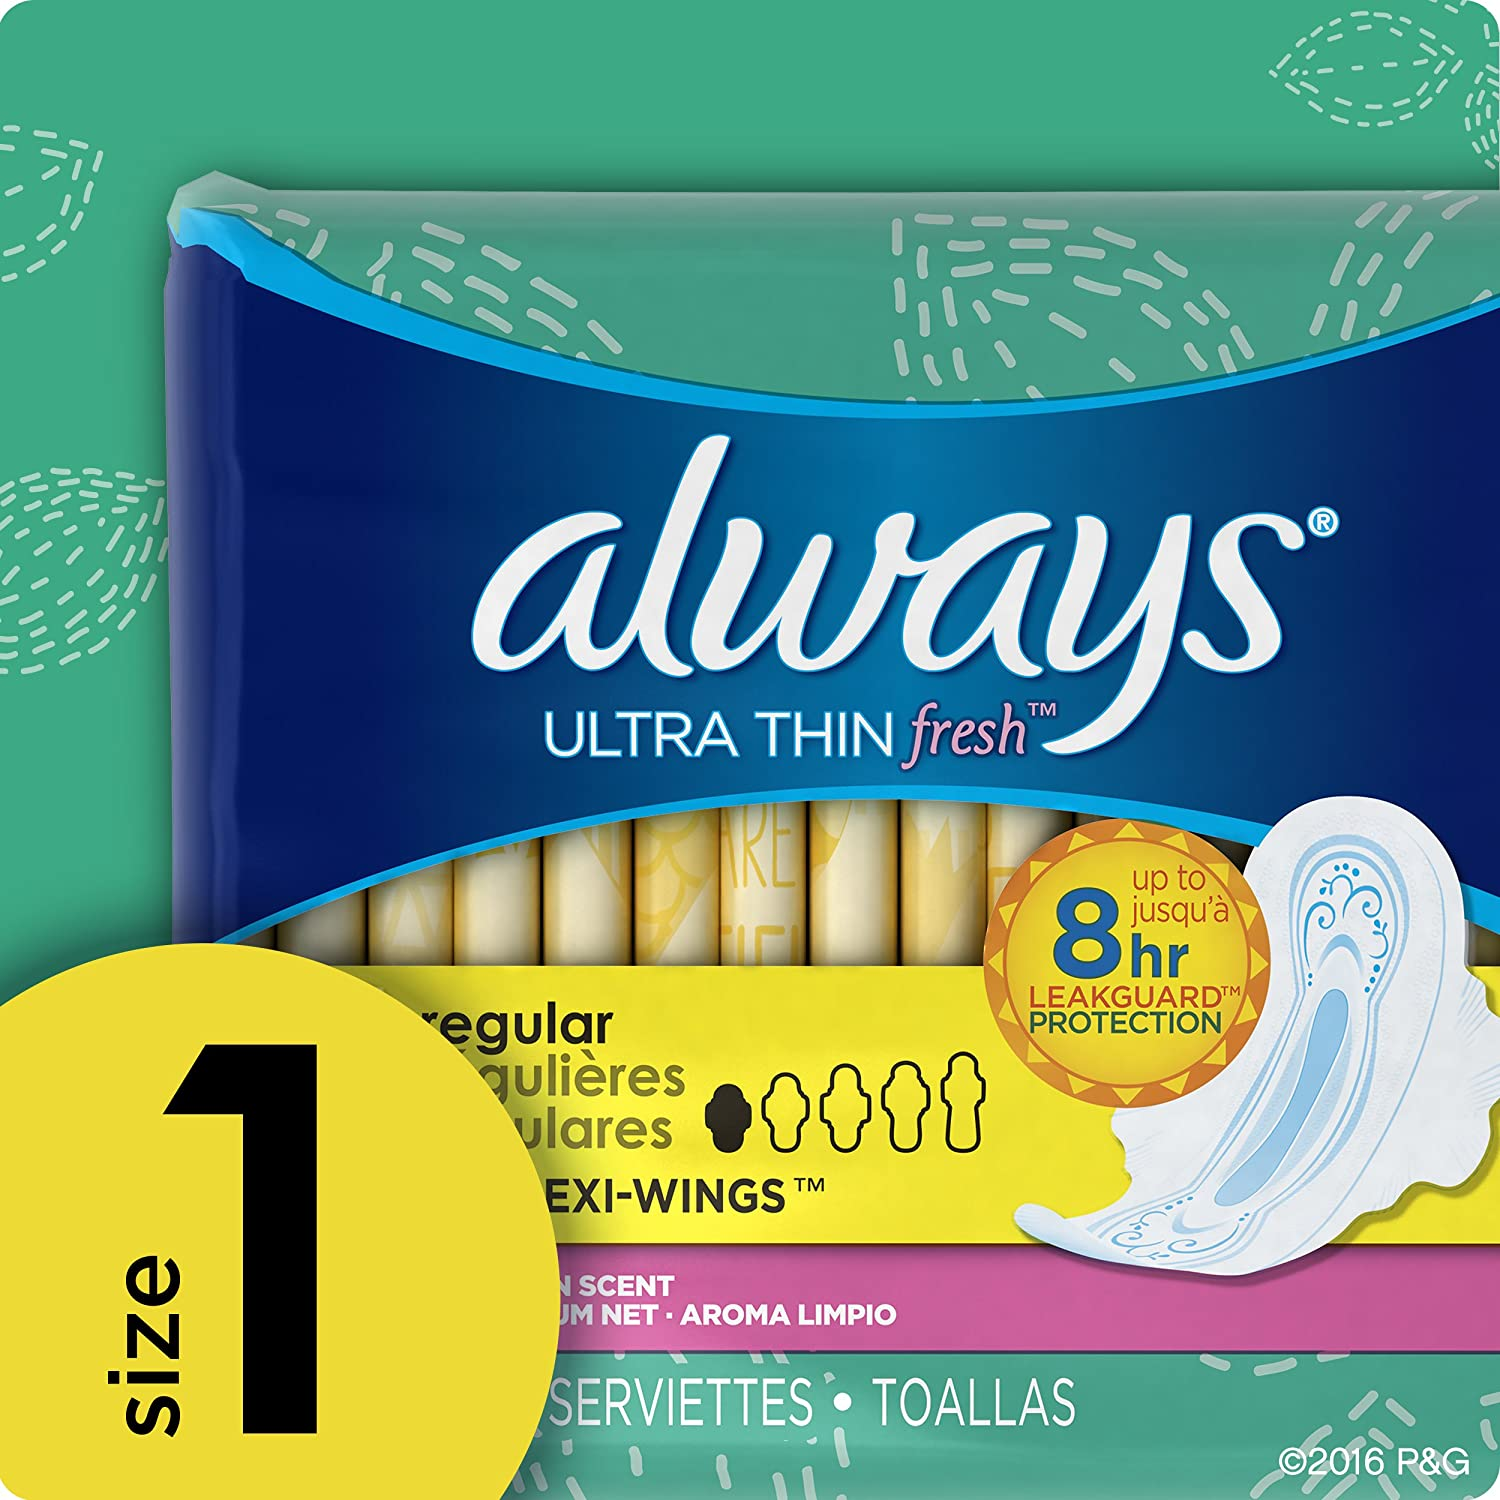 Siempre Ultra Thin Normal con Alas limpio aroma almohadillas 32 Count (Pack de 2): Amazon.es: Salud y cuidado personal